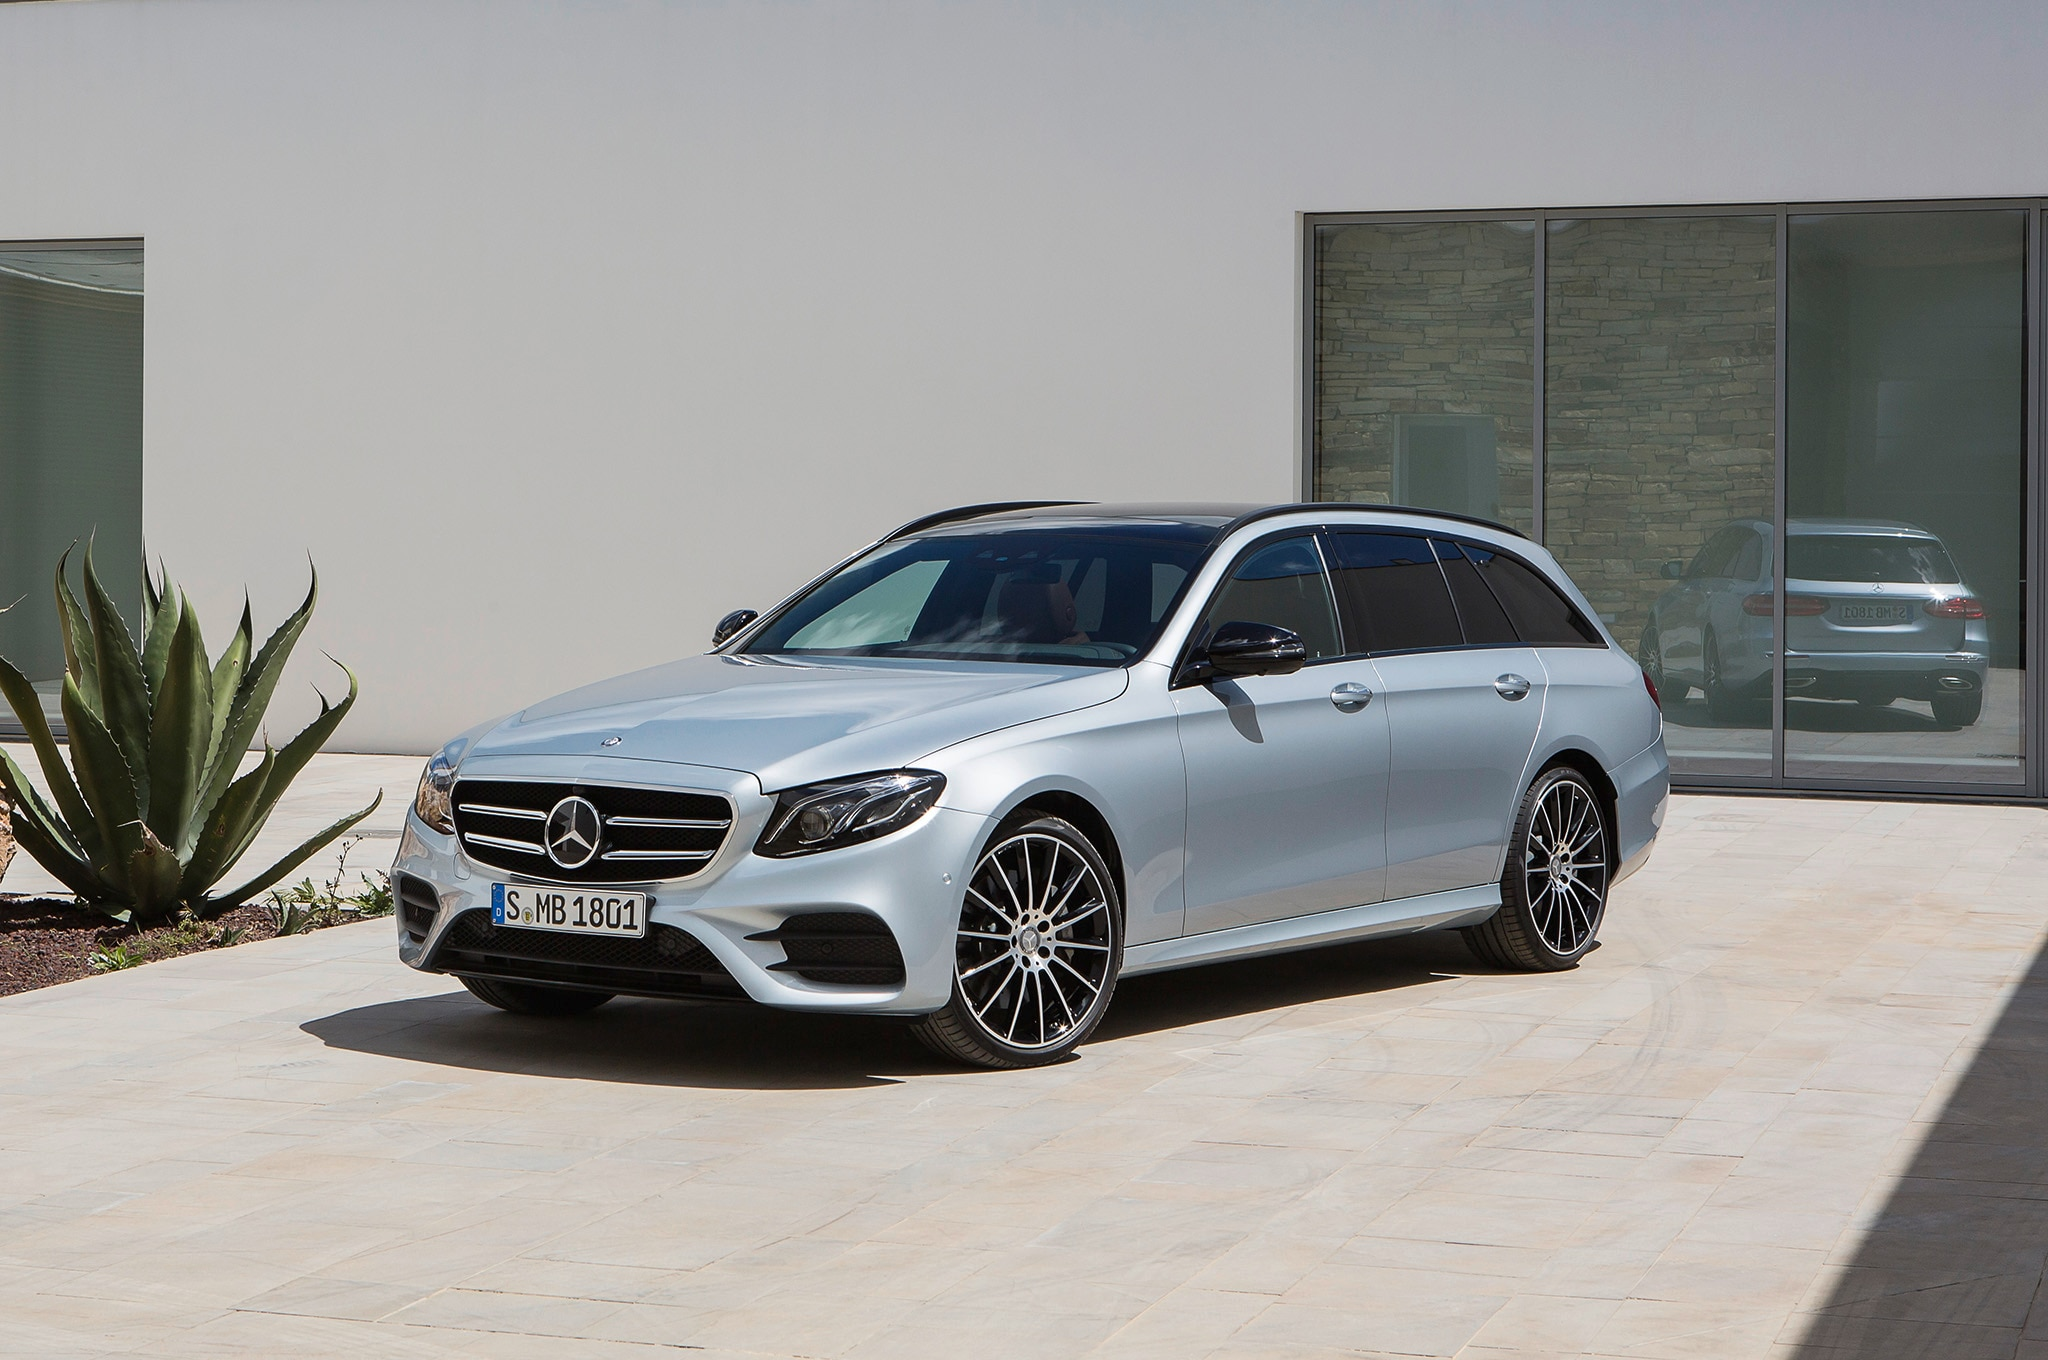 2017 mercedes benz e400 4matic wagon announced for E400 mercedes benz 2017